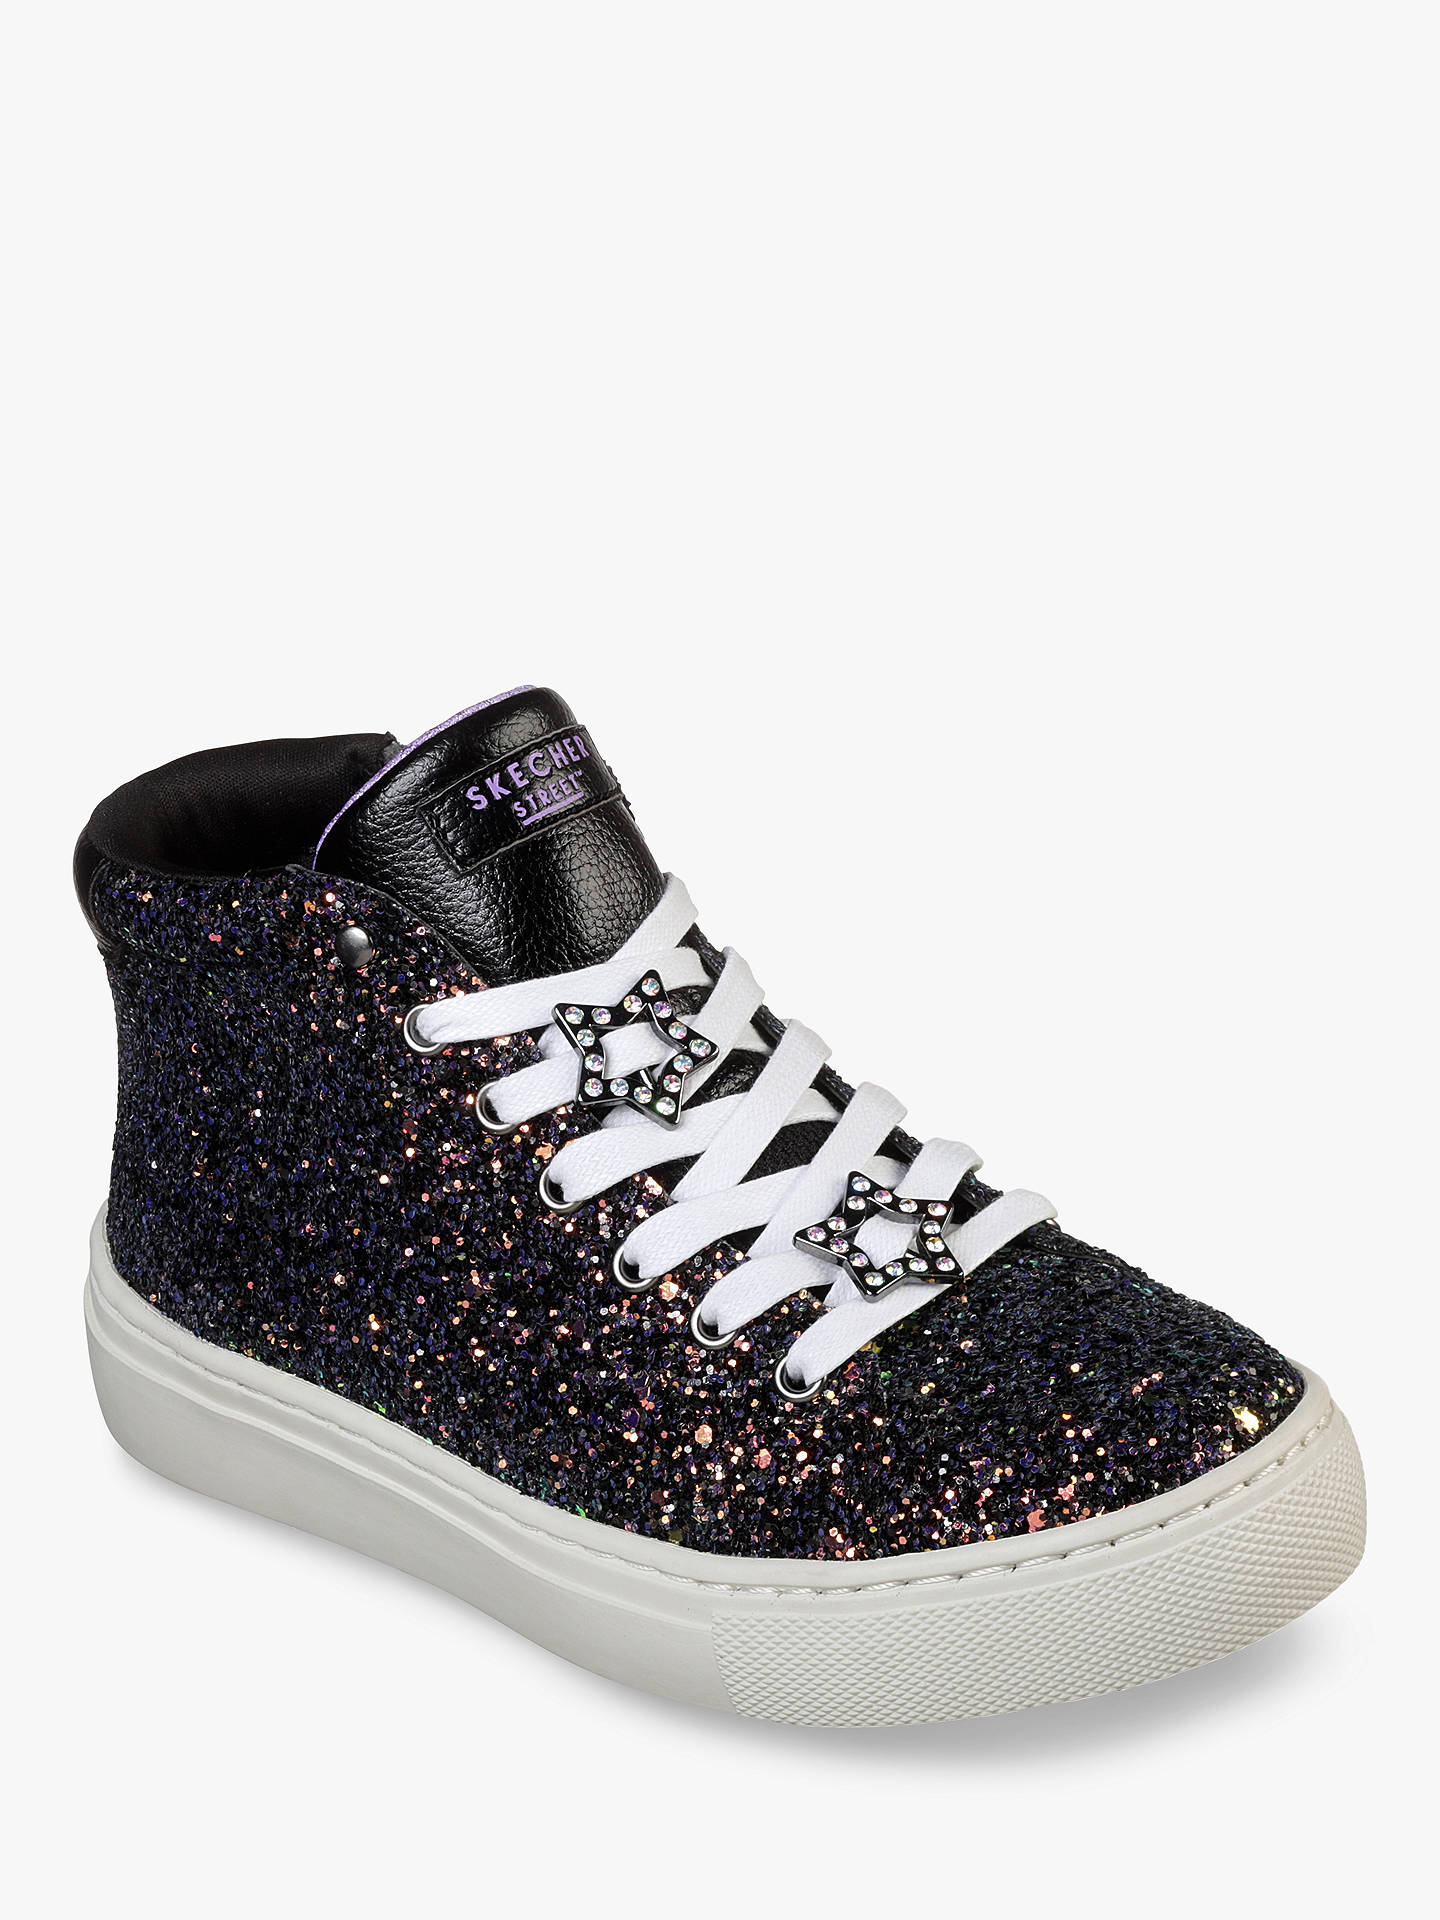 Buy Skechers Side Street Night Life High Top Trainers, Black, 36 Online at johnlewis.com